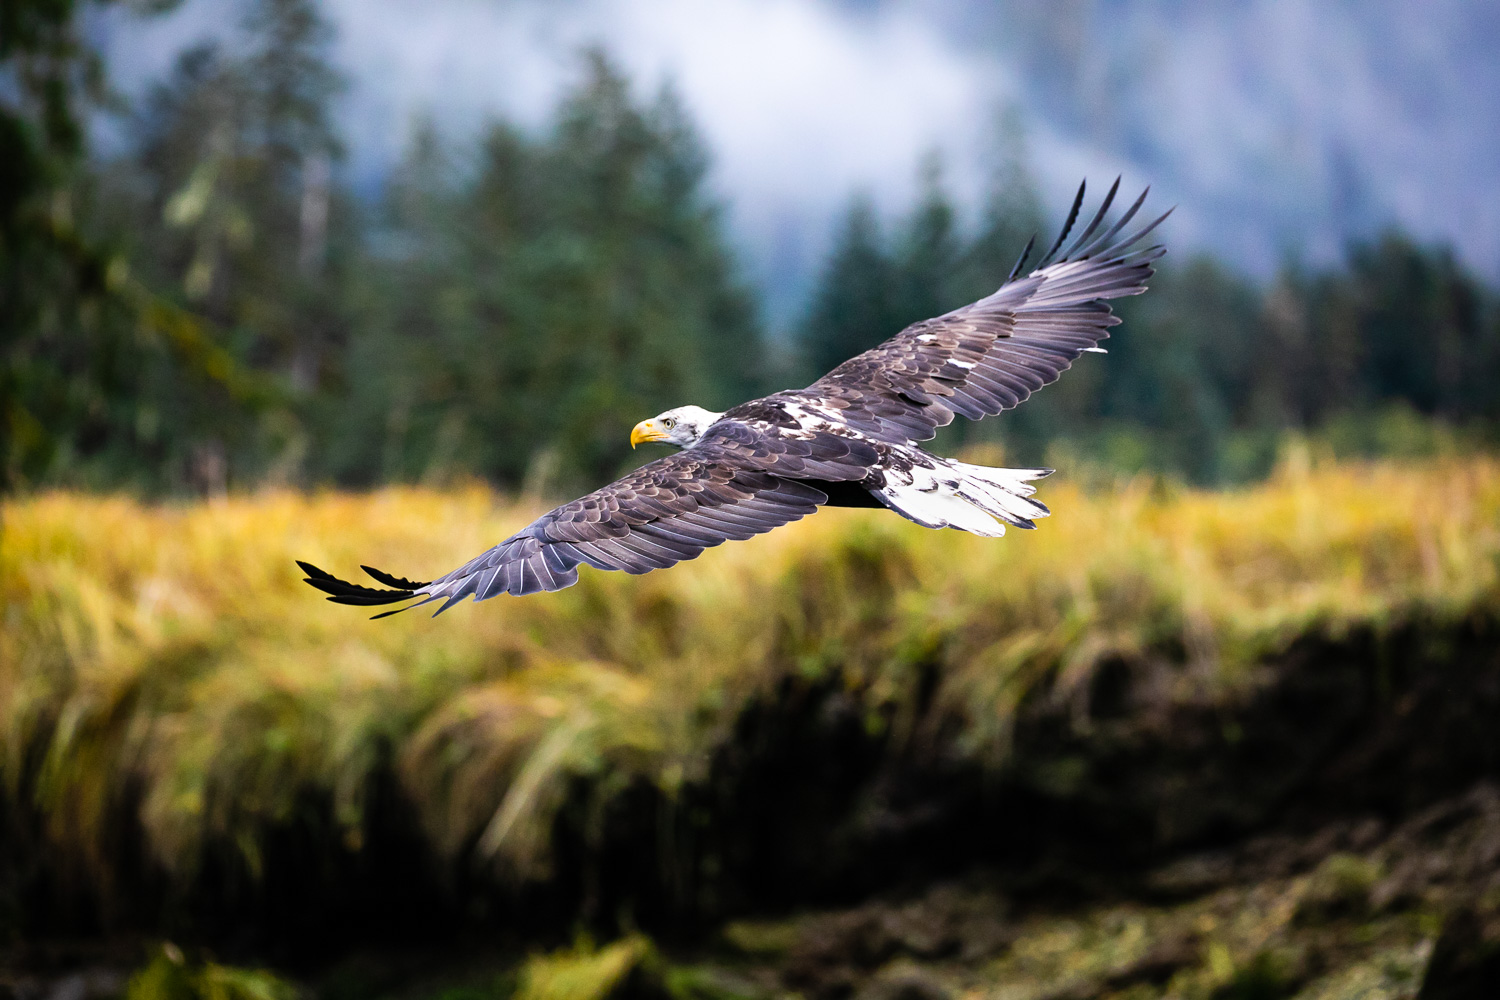 A bald eagle soars through the Khutze River Valley in the Great Bear Rainforest on BC's north coast. During the fall salmon run, hundreds of eagles can be seen perched in trees and fishing along the rivers. By carrying the dead salmon off into the woods, the eagles help to fertilize the forest as the decomposing carcasses release nitrogen into the soil. Capturing birds in flight is always a difficult challenge, so I was thrilled to see the eye contact in this image and the beautiful definition in the wings and feathers.